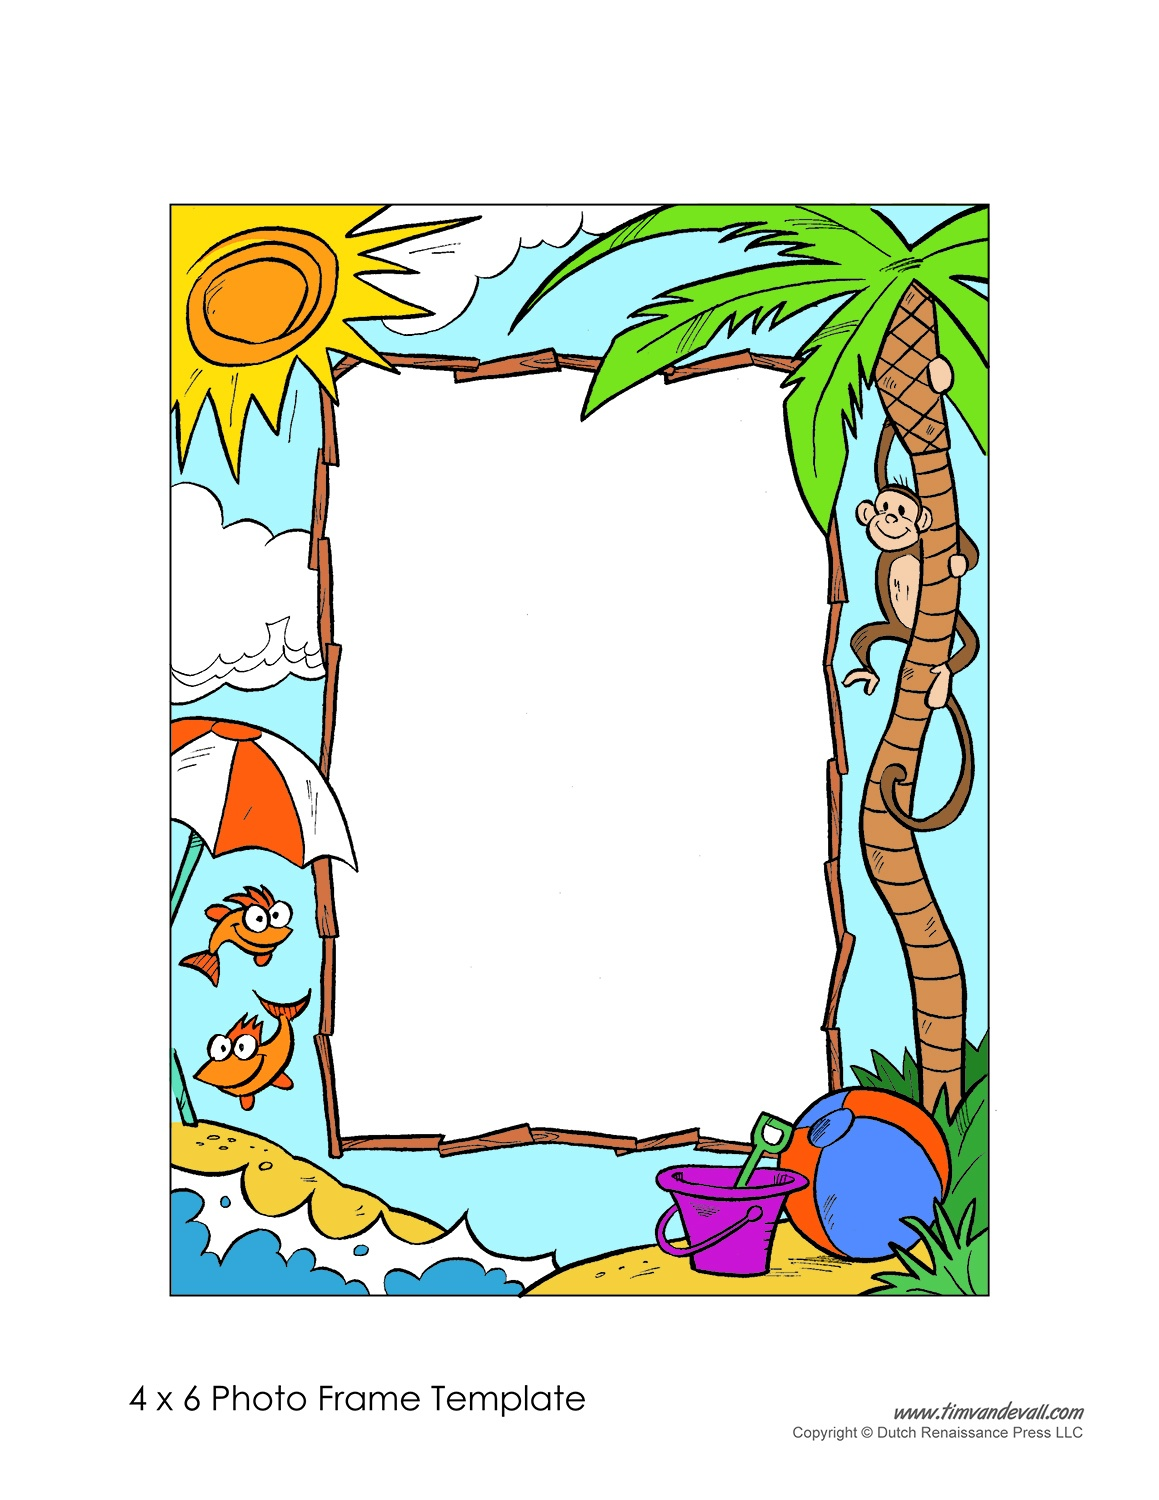 Free Photo Frame Templates - Make Your Own Photo Frame - Free Printable Photo Frames